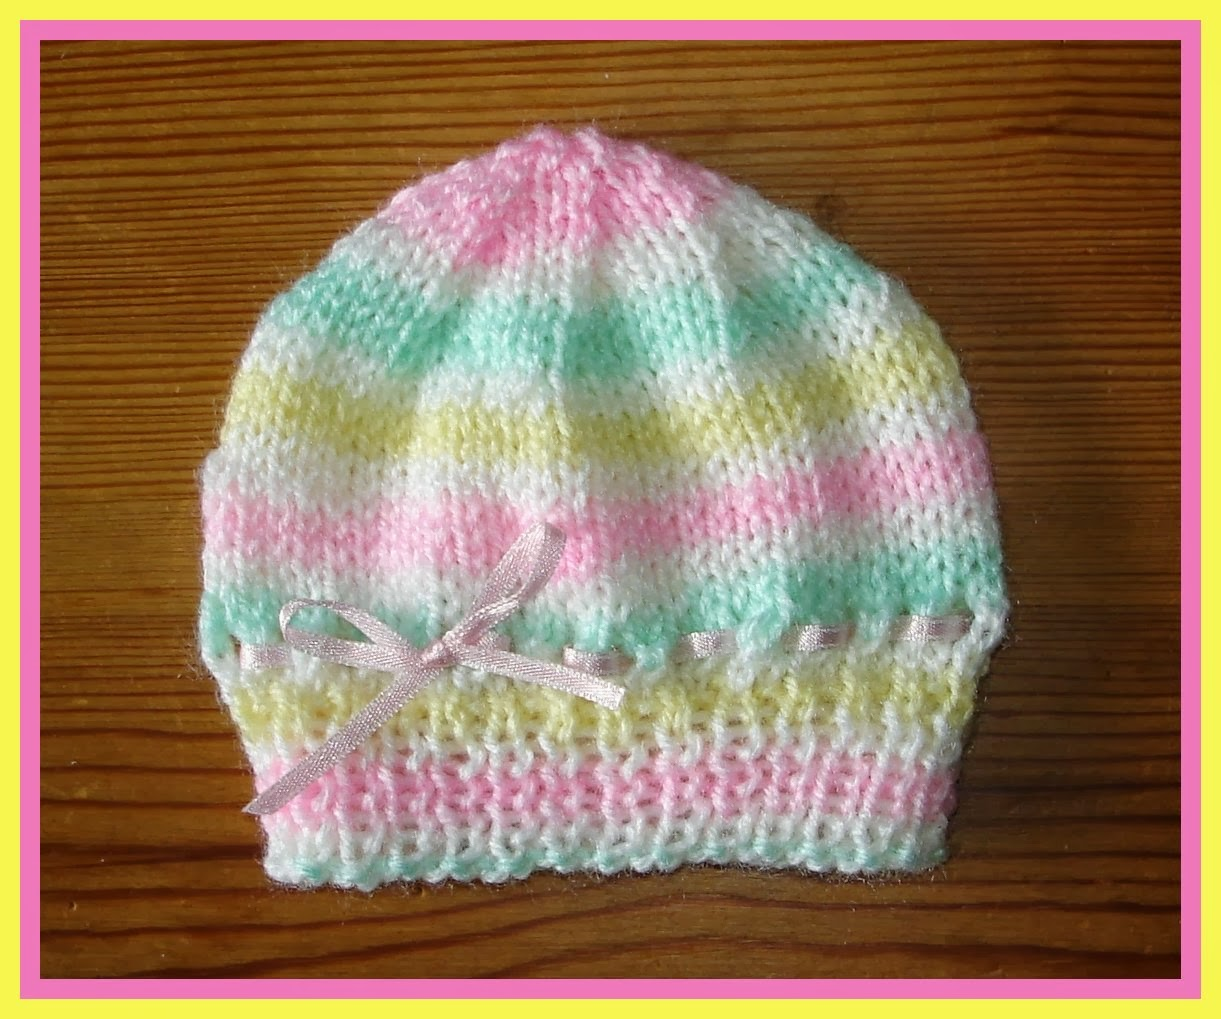 Marianna's Lazy Daisy Days: Candystripe Knitted Baby Hats